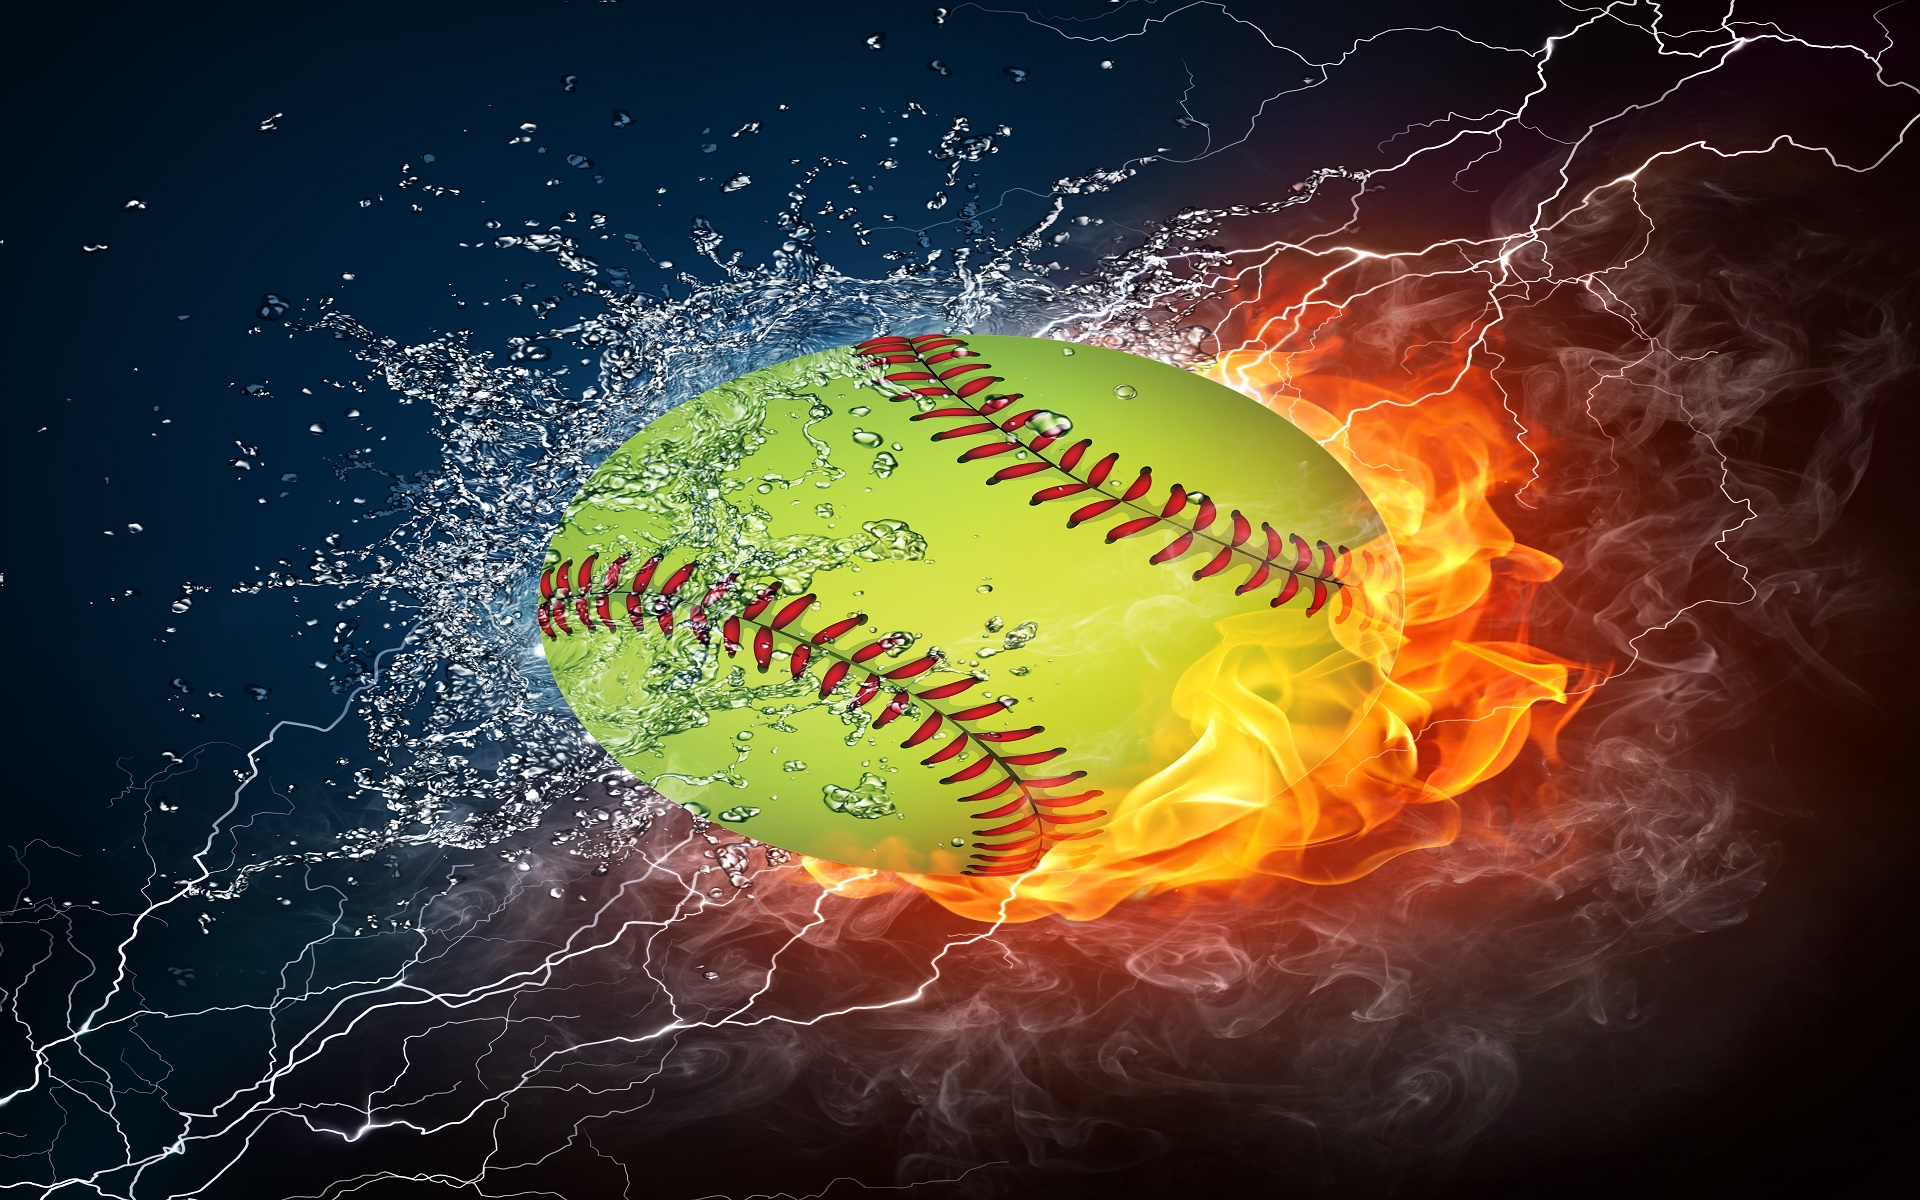 Cool softball wallpapers Desktop Backgrounds 2019 1920x1200